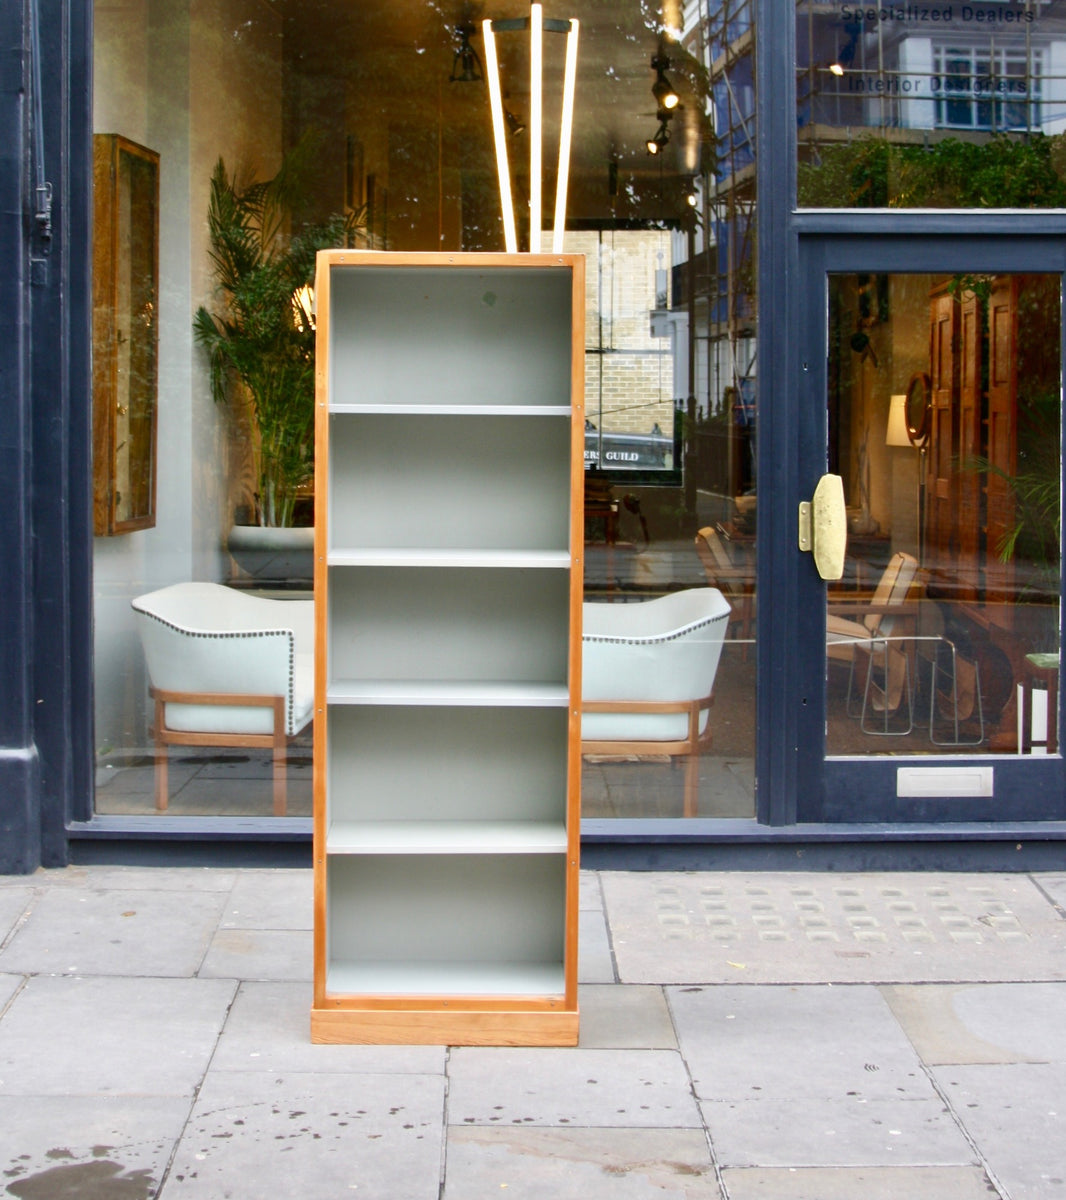 Narrow Bookcase #2 Børge Mogensen & Grete Meyer - Quality Danish Modern Beautiful Handmade Danish Design Architect Designed Simple Built for the future Storage original  1960s